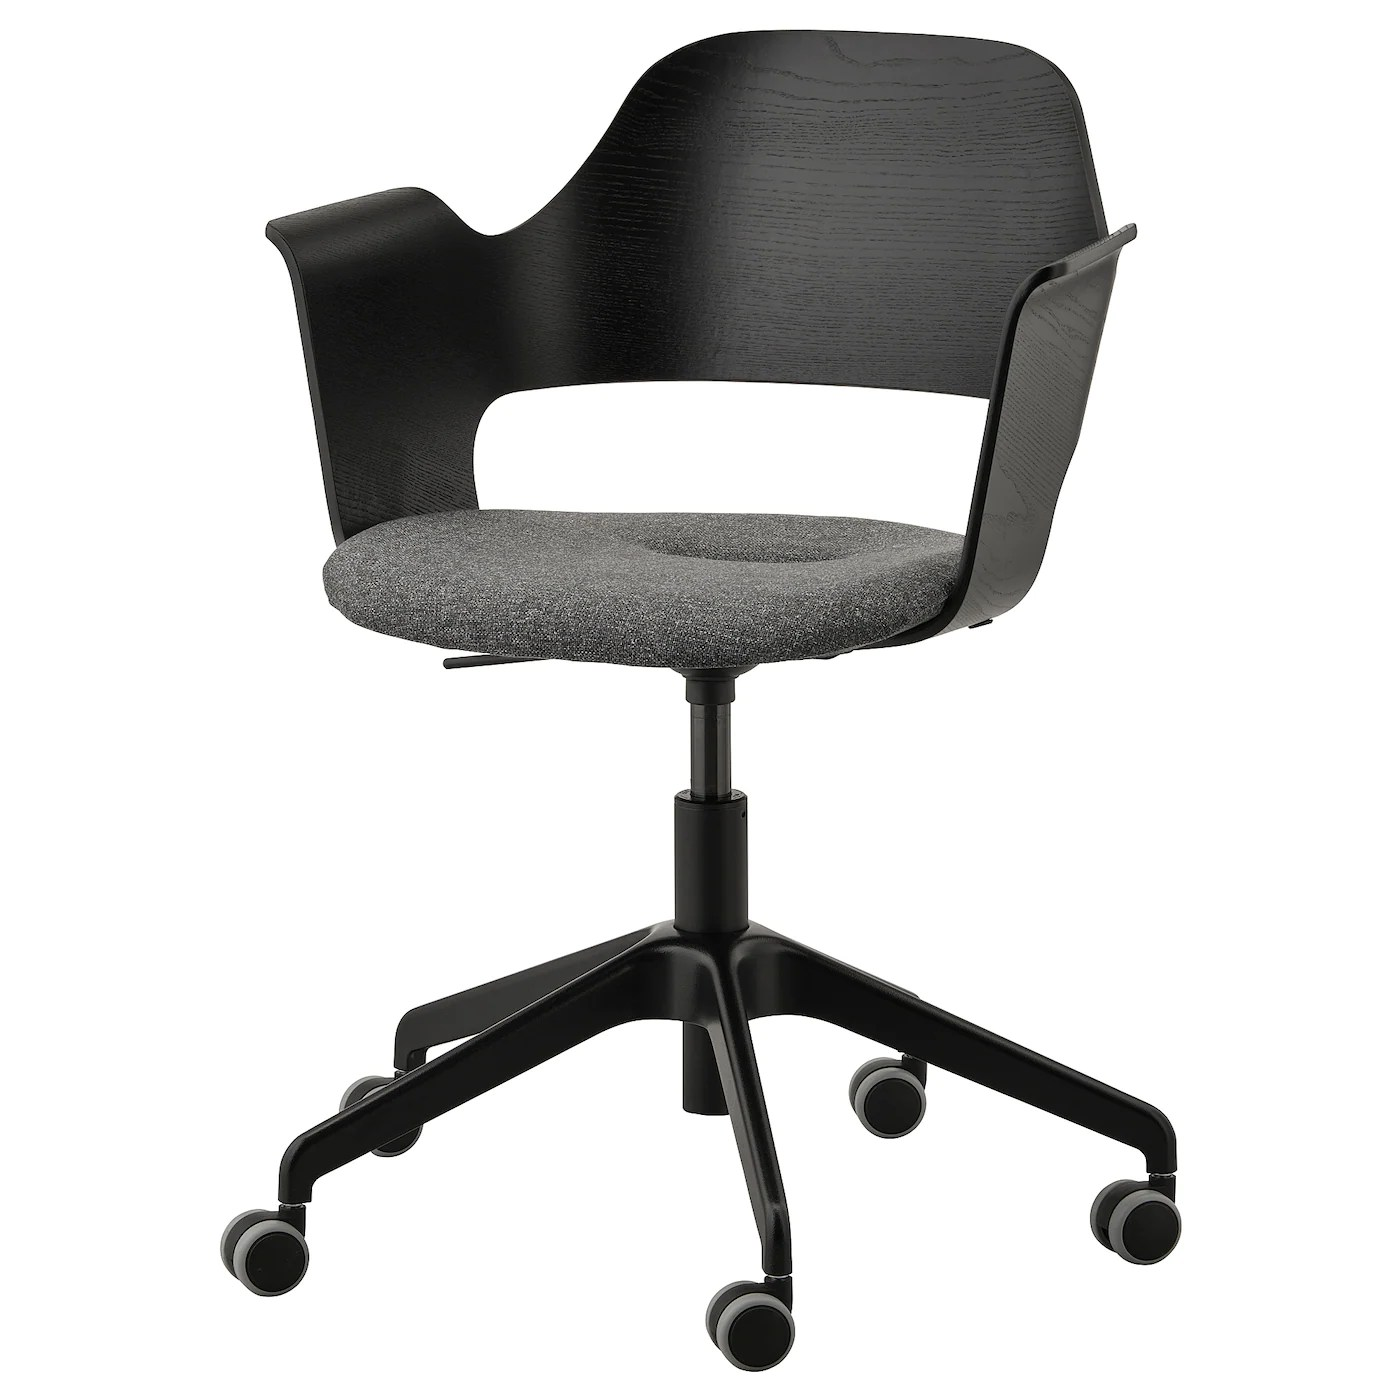 Fjallberget Fauteuil Conference A Roulettes Plaque Frene Teinte Noir Gunnared Gris Fonce Ikea